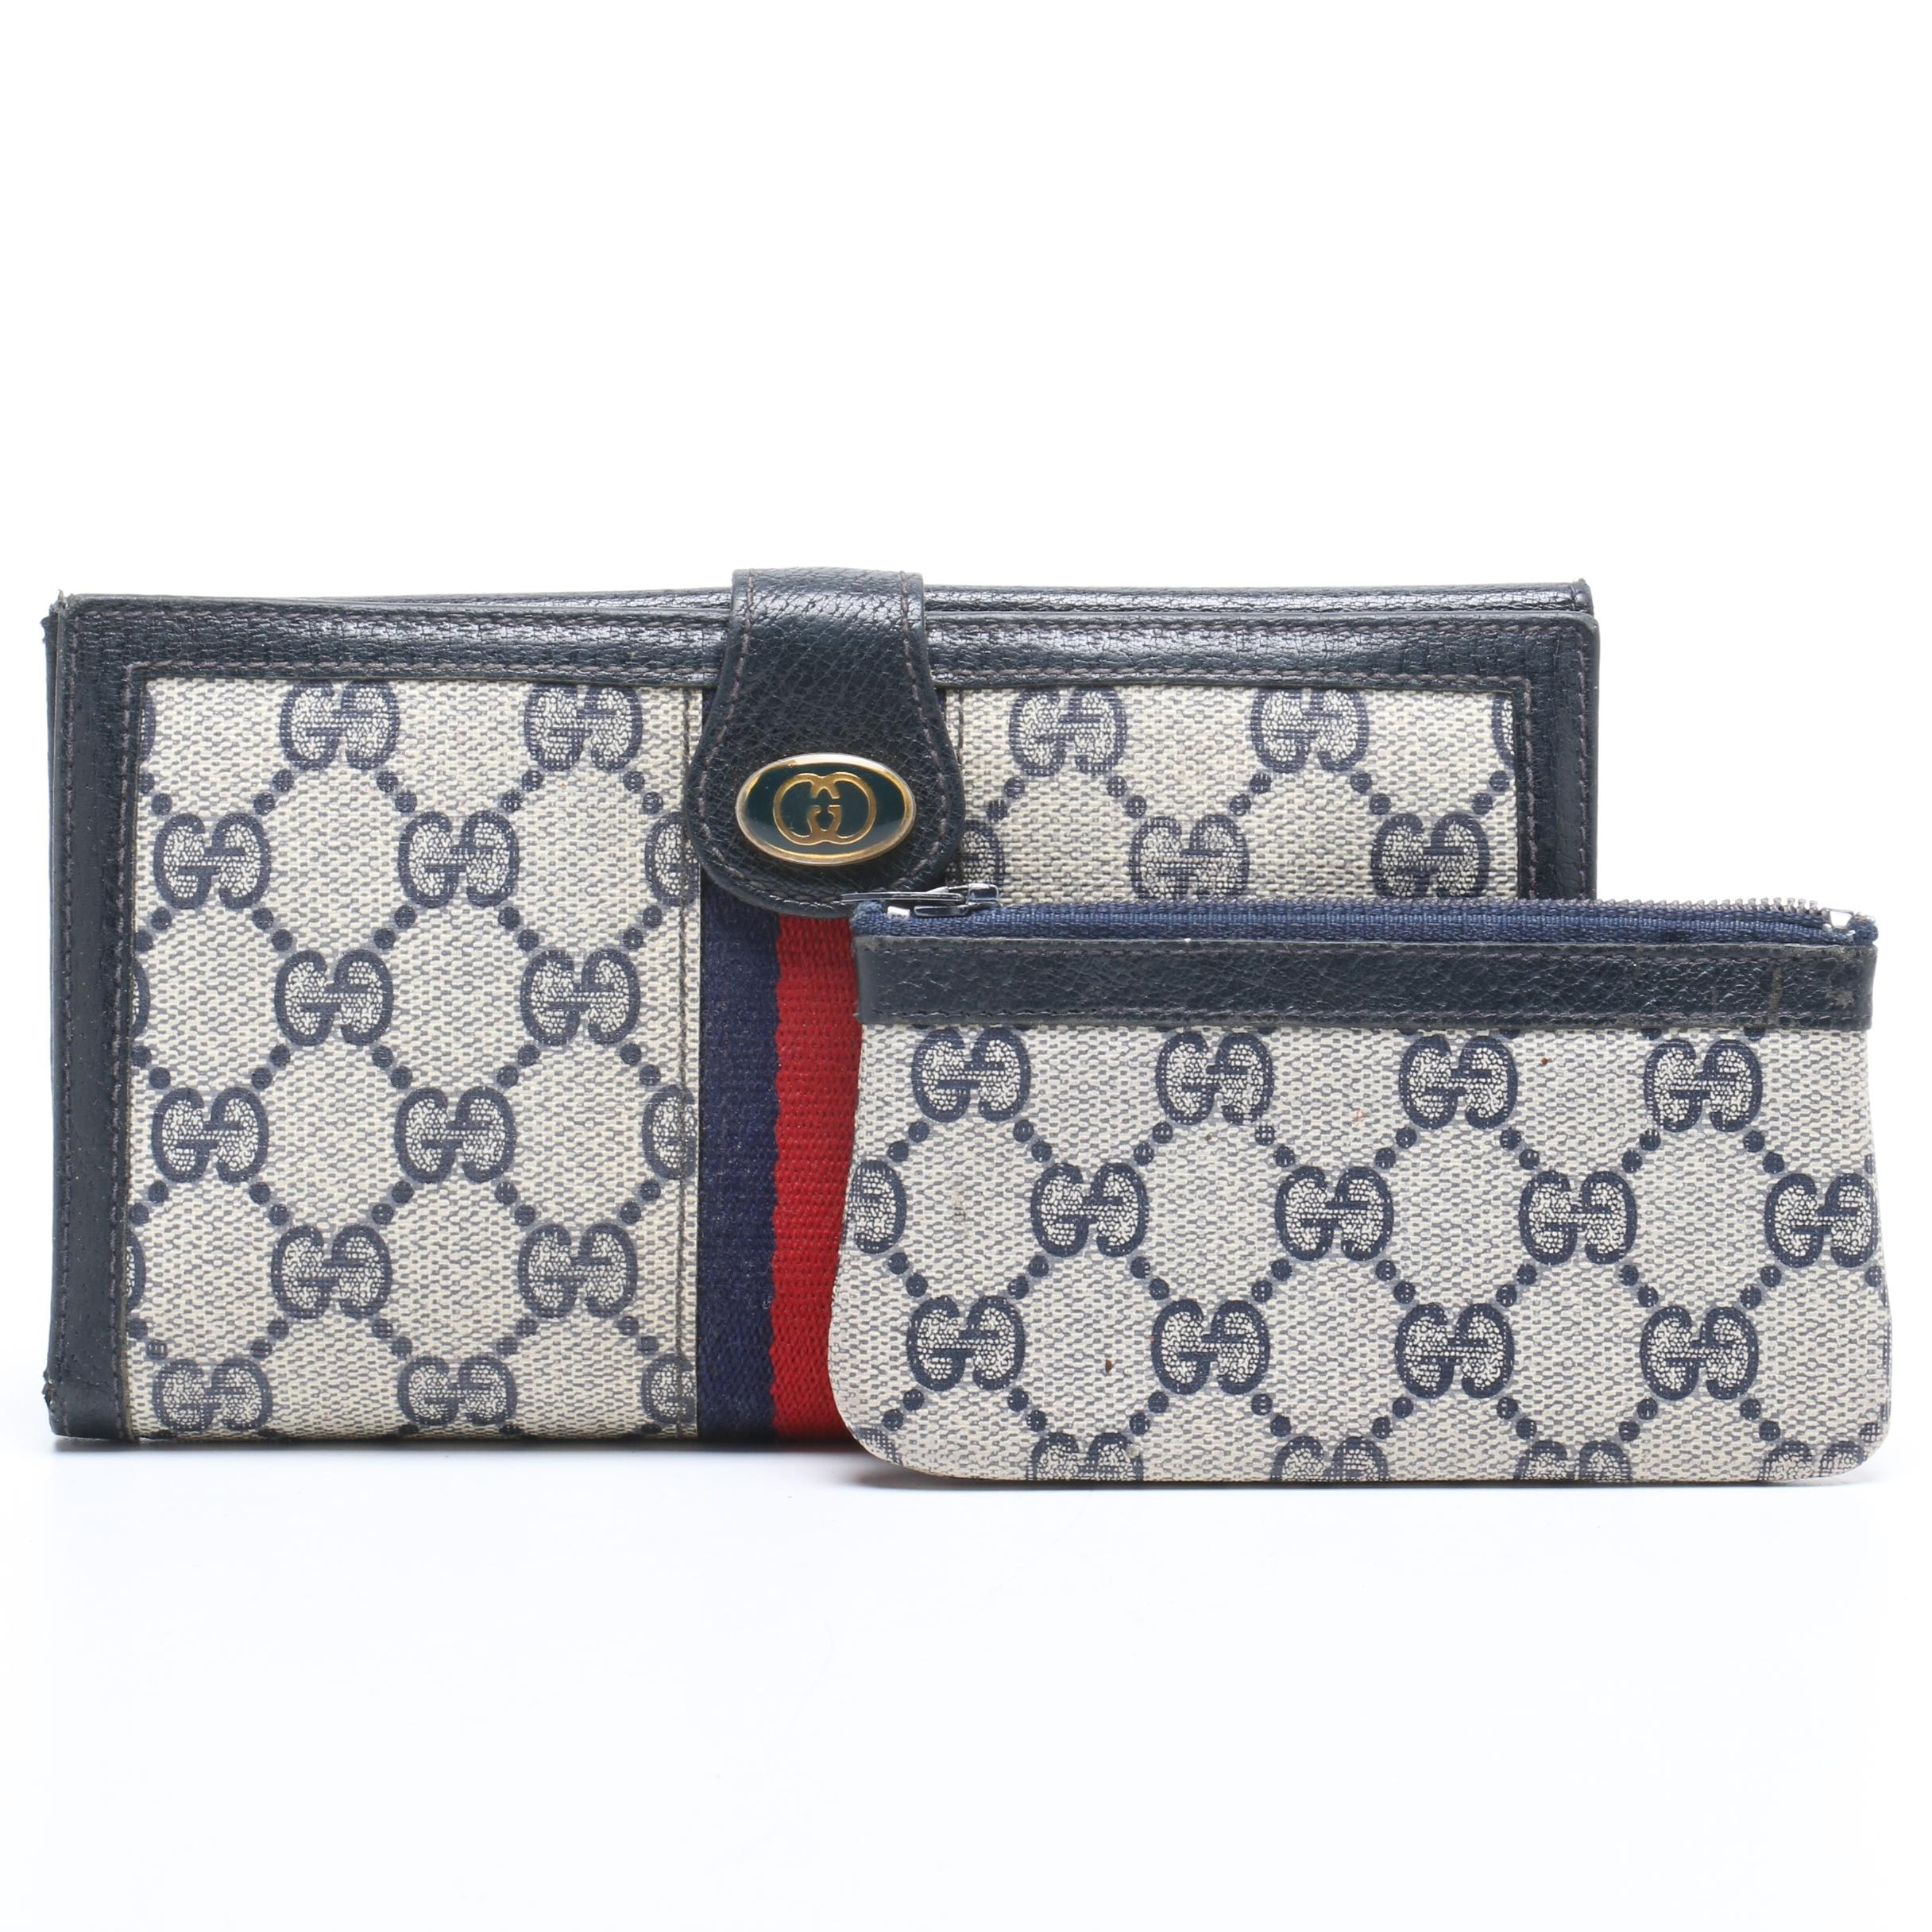 Gucci Accessory Collection GG Supreme Canvas Web Stripe Wallet and Zipper Pouch